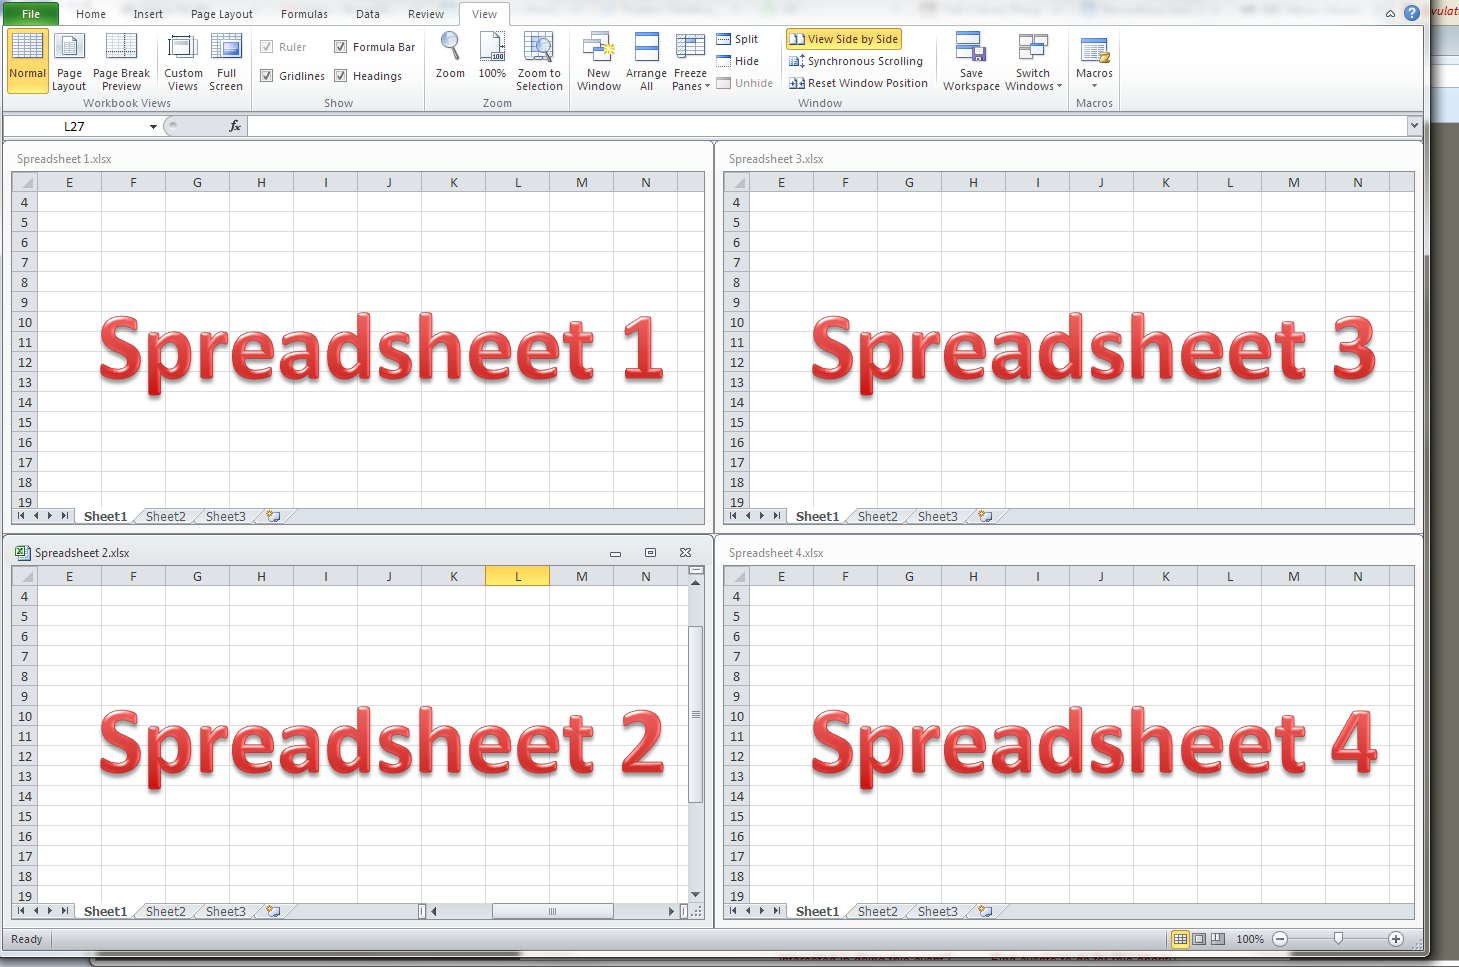 merging spreadsheets in excel 2013